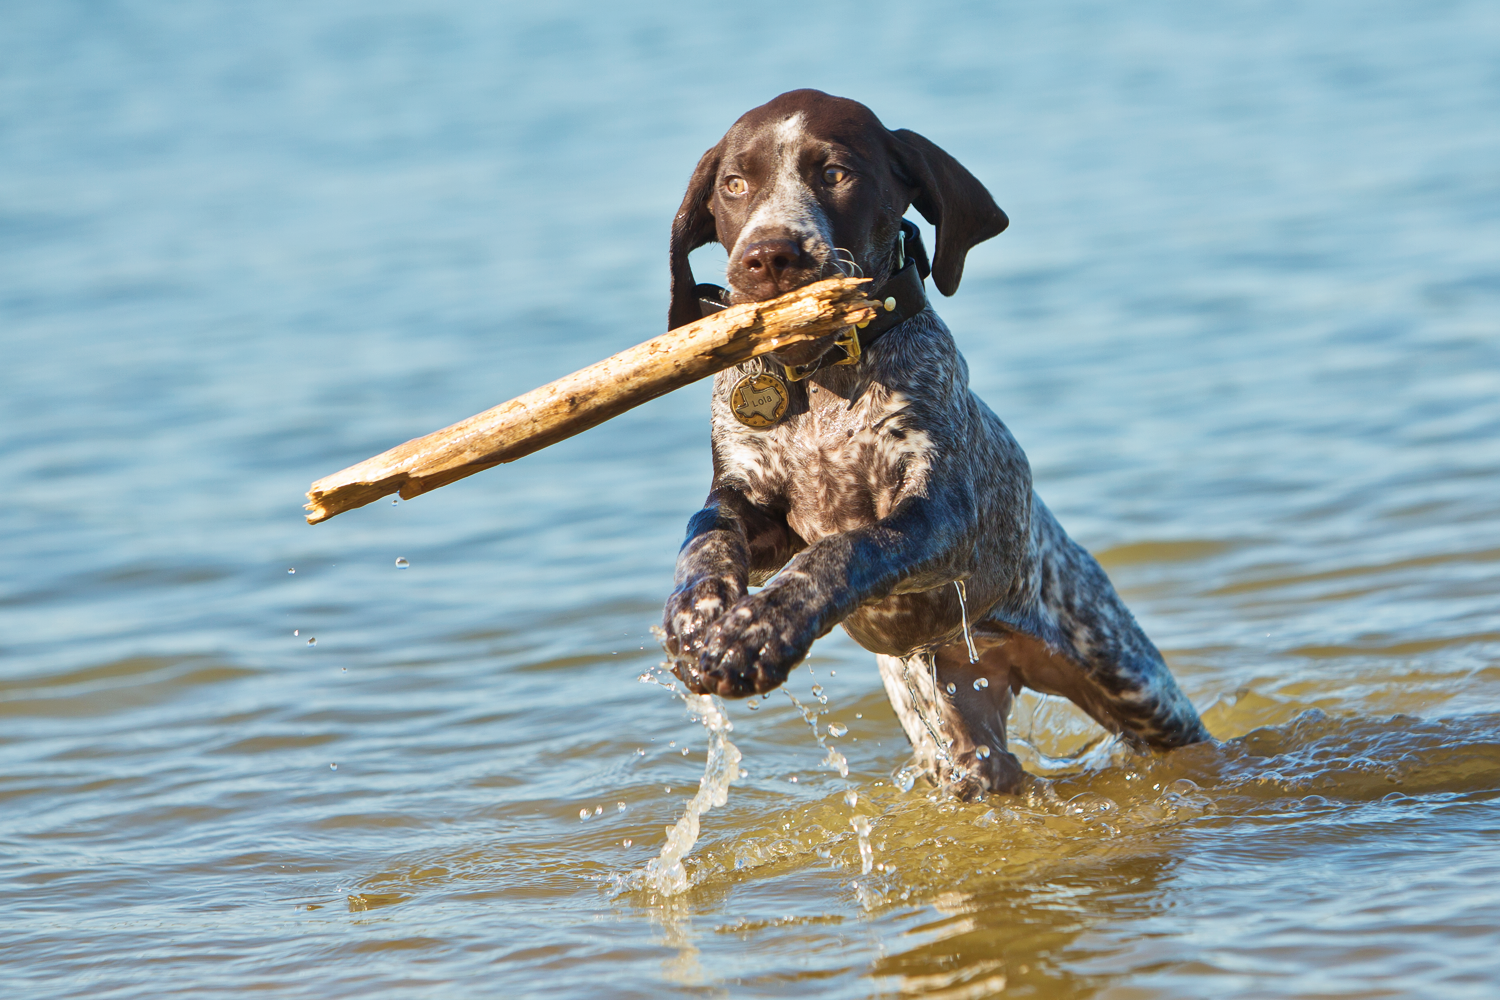 German Shorthaired Pointer in the water